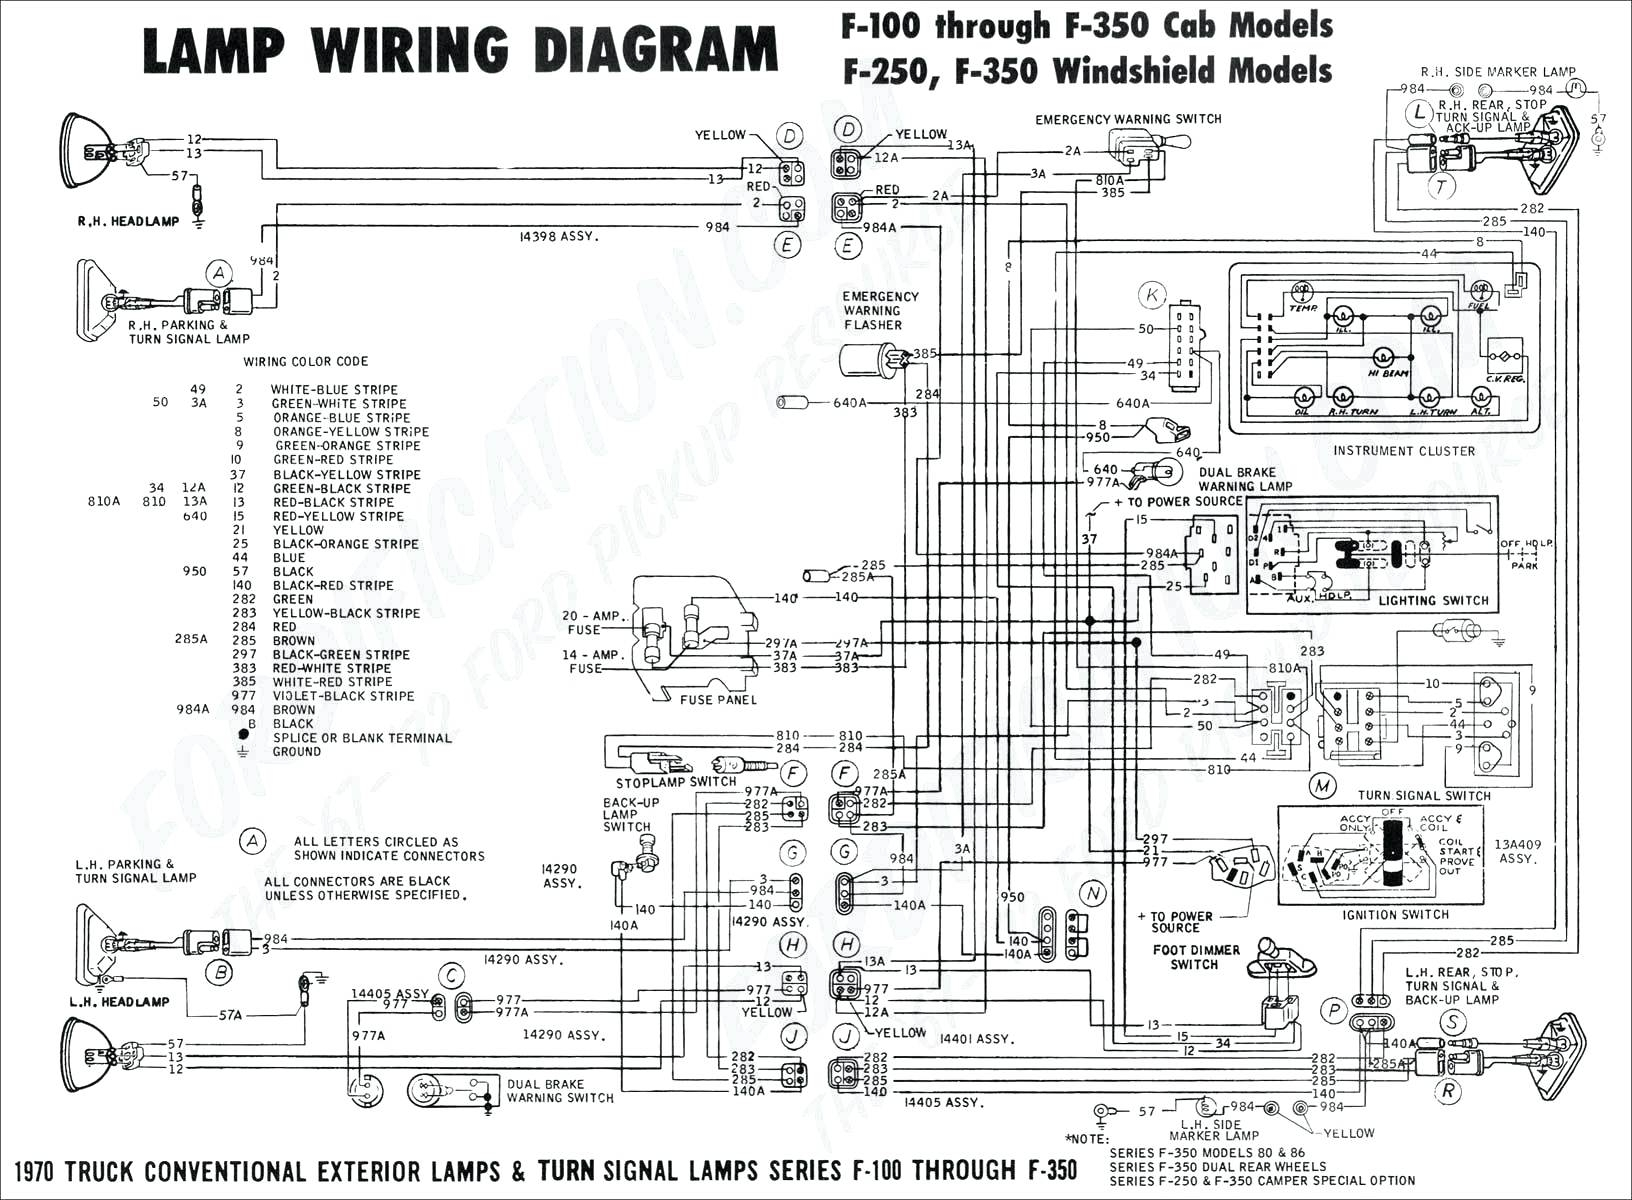 2014 Ford F Serie Wiring Diagram Wiring Diagram Active E Active E Bujinkan It